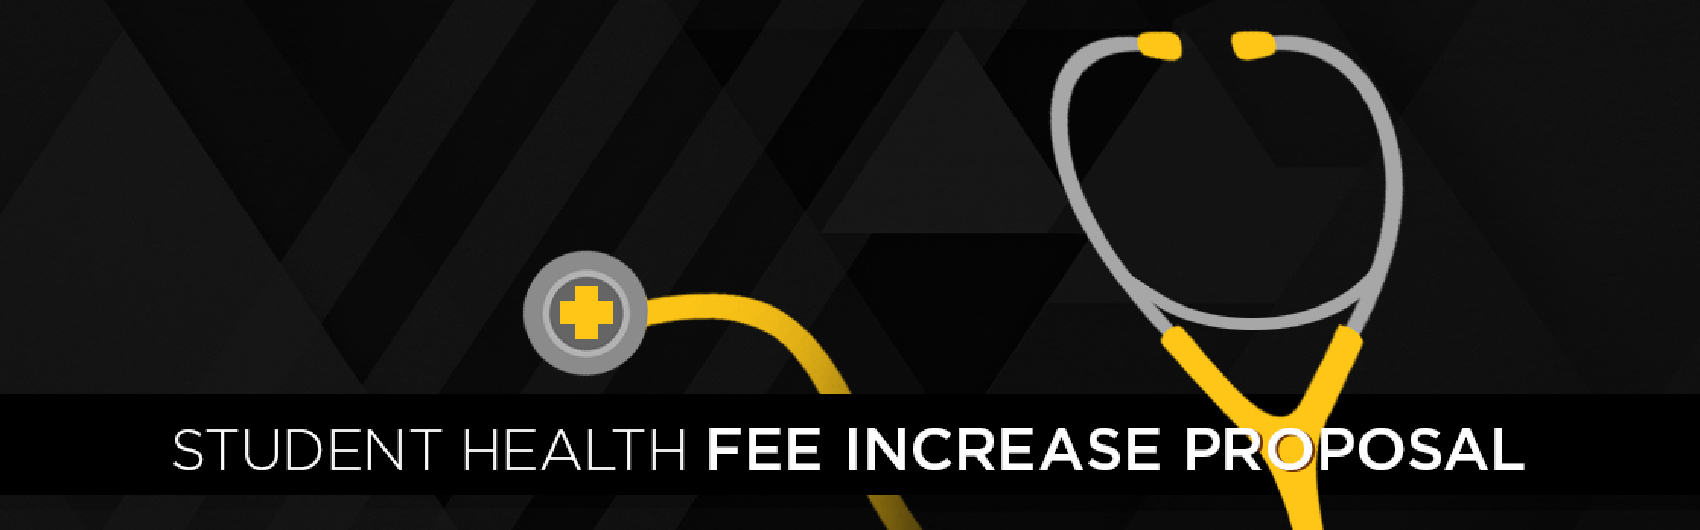 Student Health Fee Proposal Banner